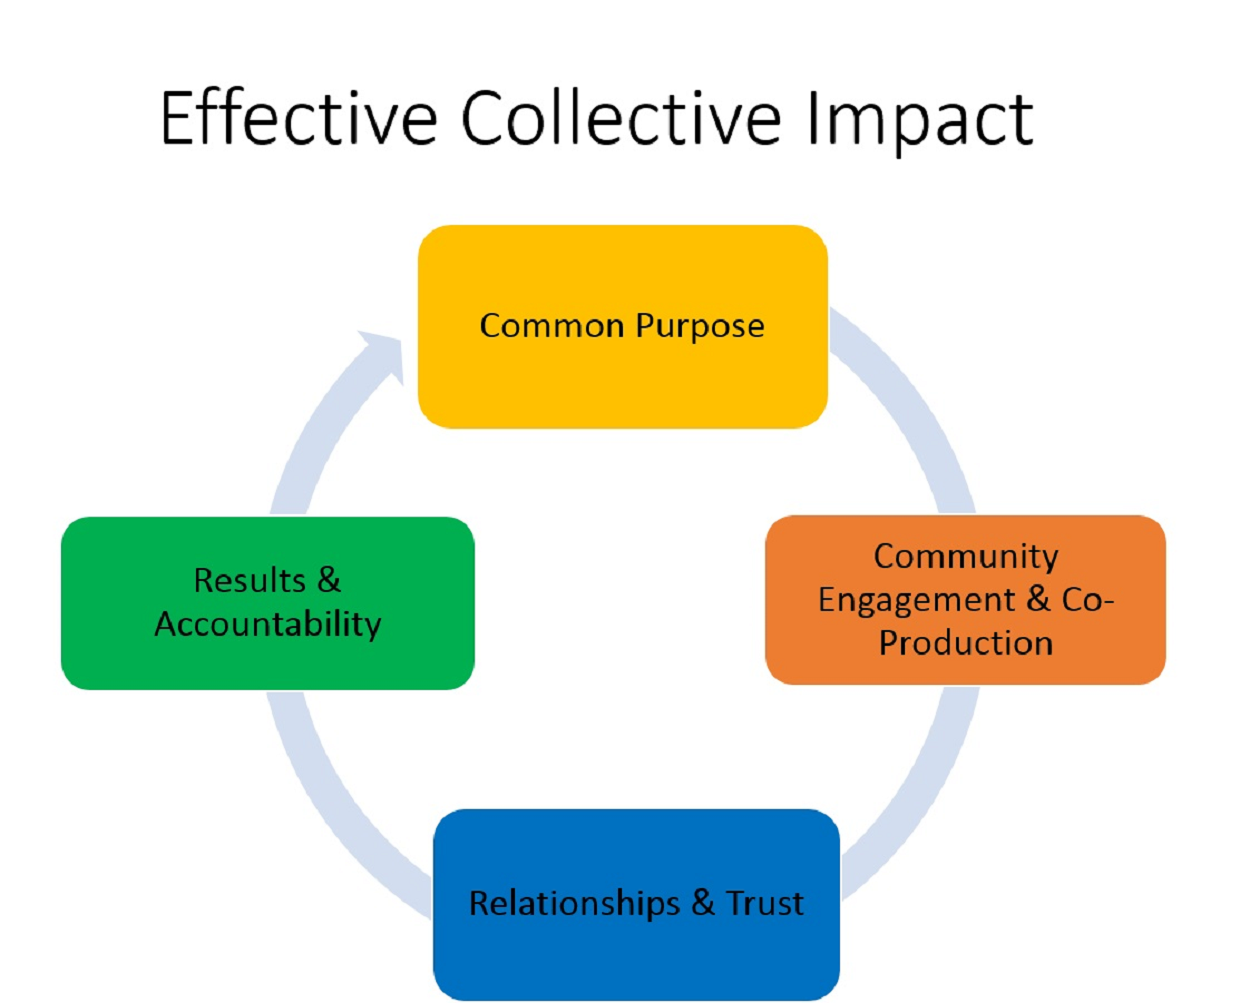 The Four Elements of Effective Collective Impact